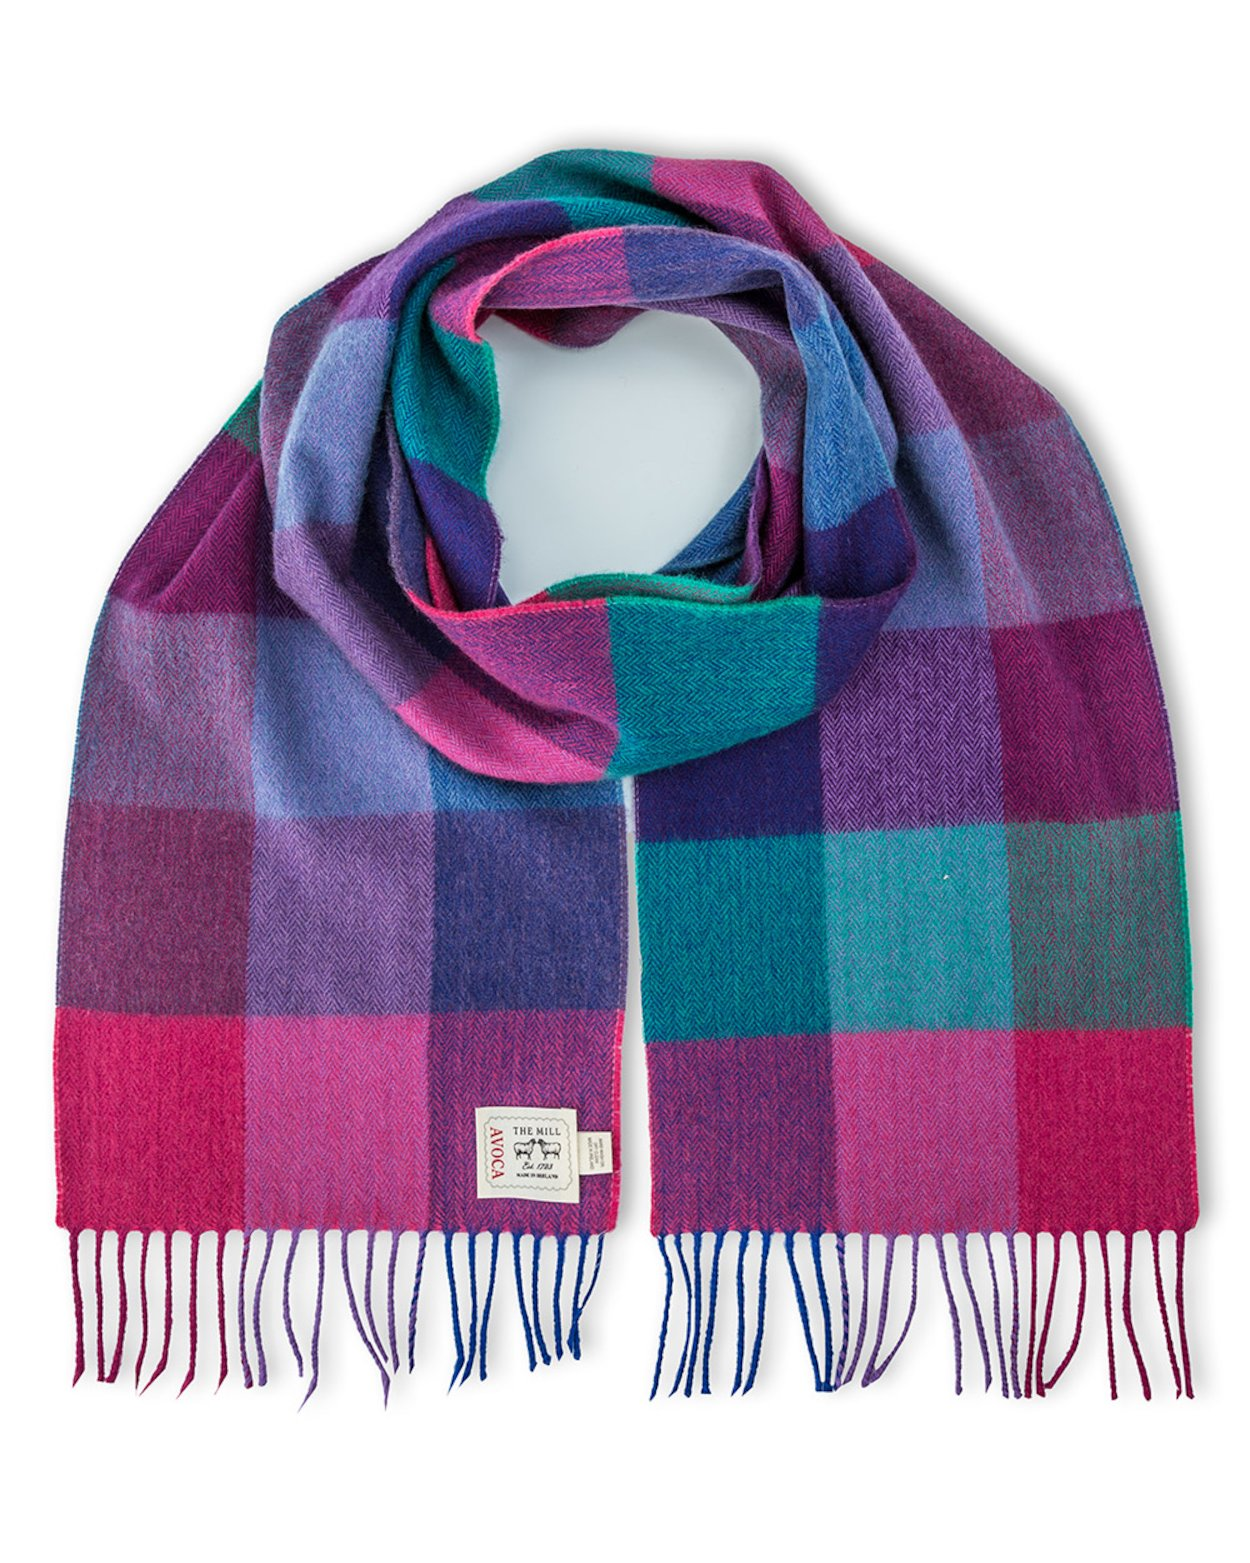 Avoca 100% Lambswool Scarf -Made in Ireland Jewels Fields design